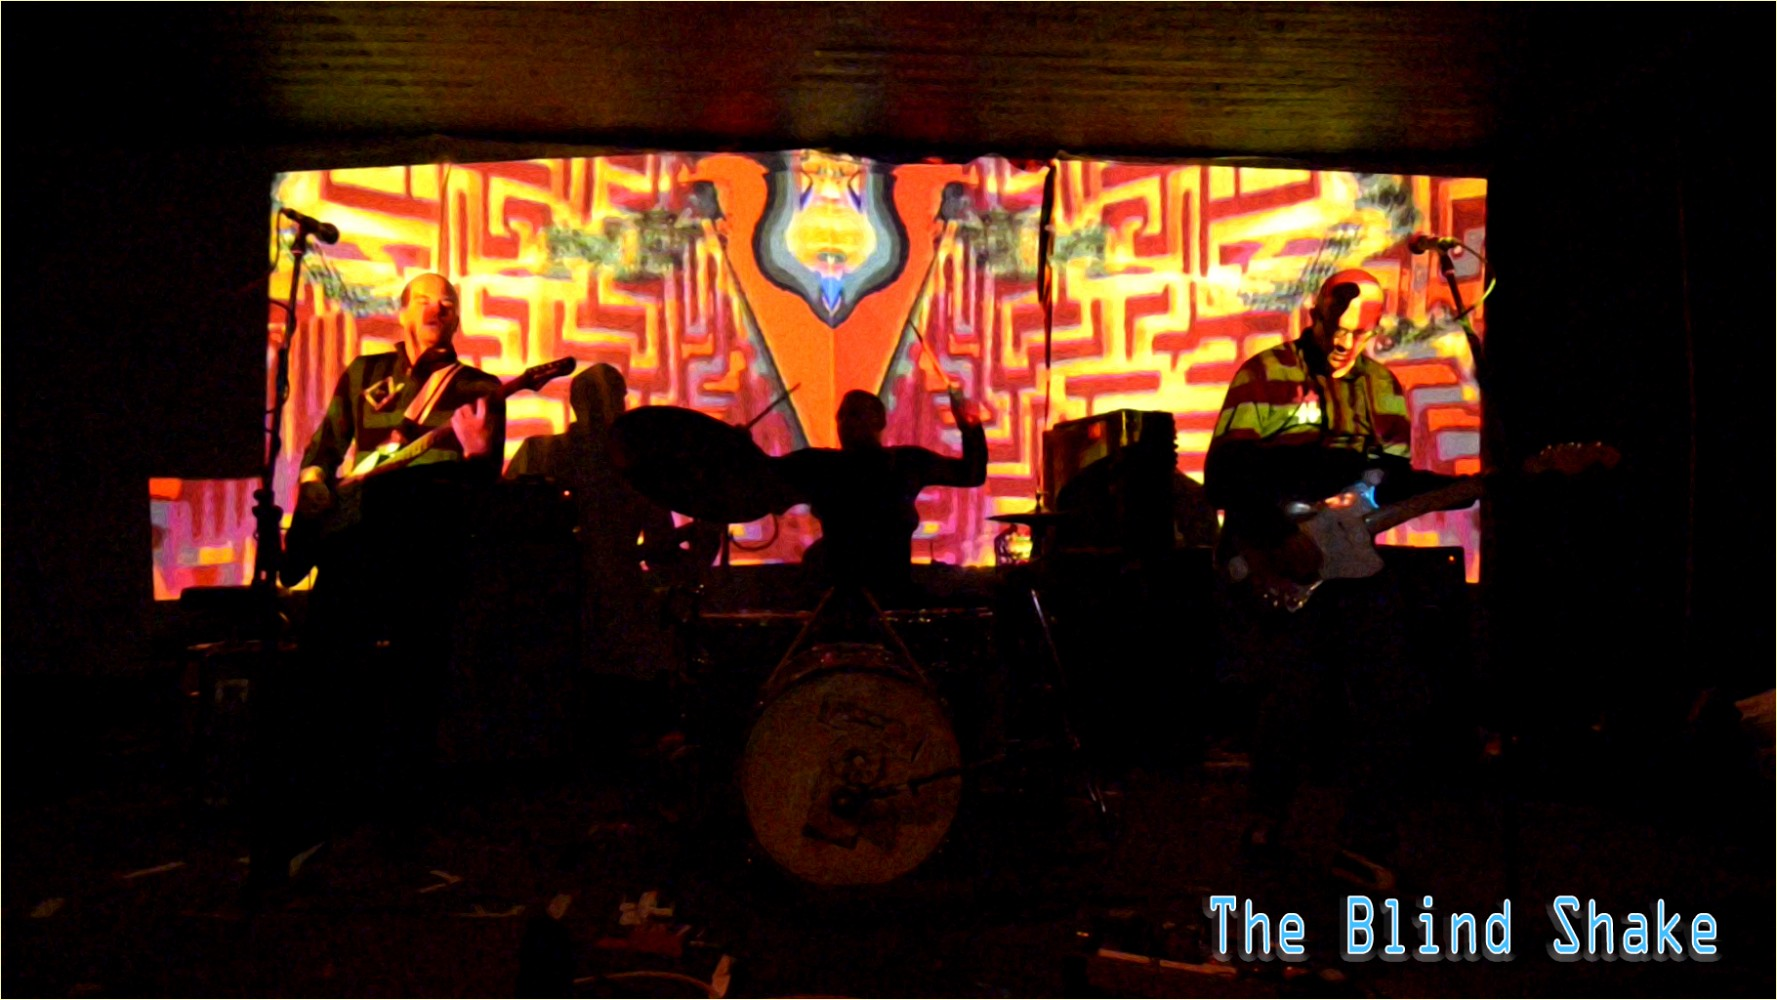 The Blind Shake at Milwaukee Psych Fest